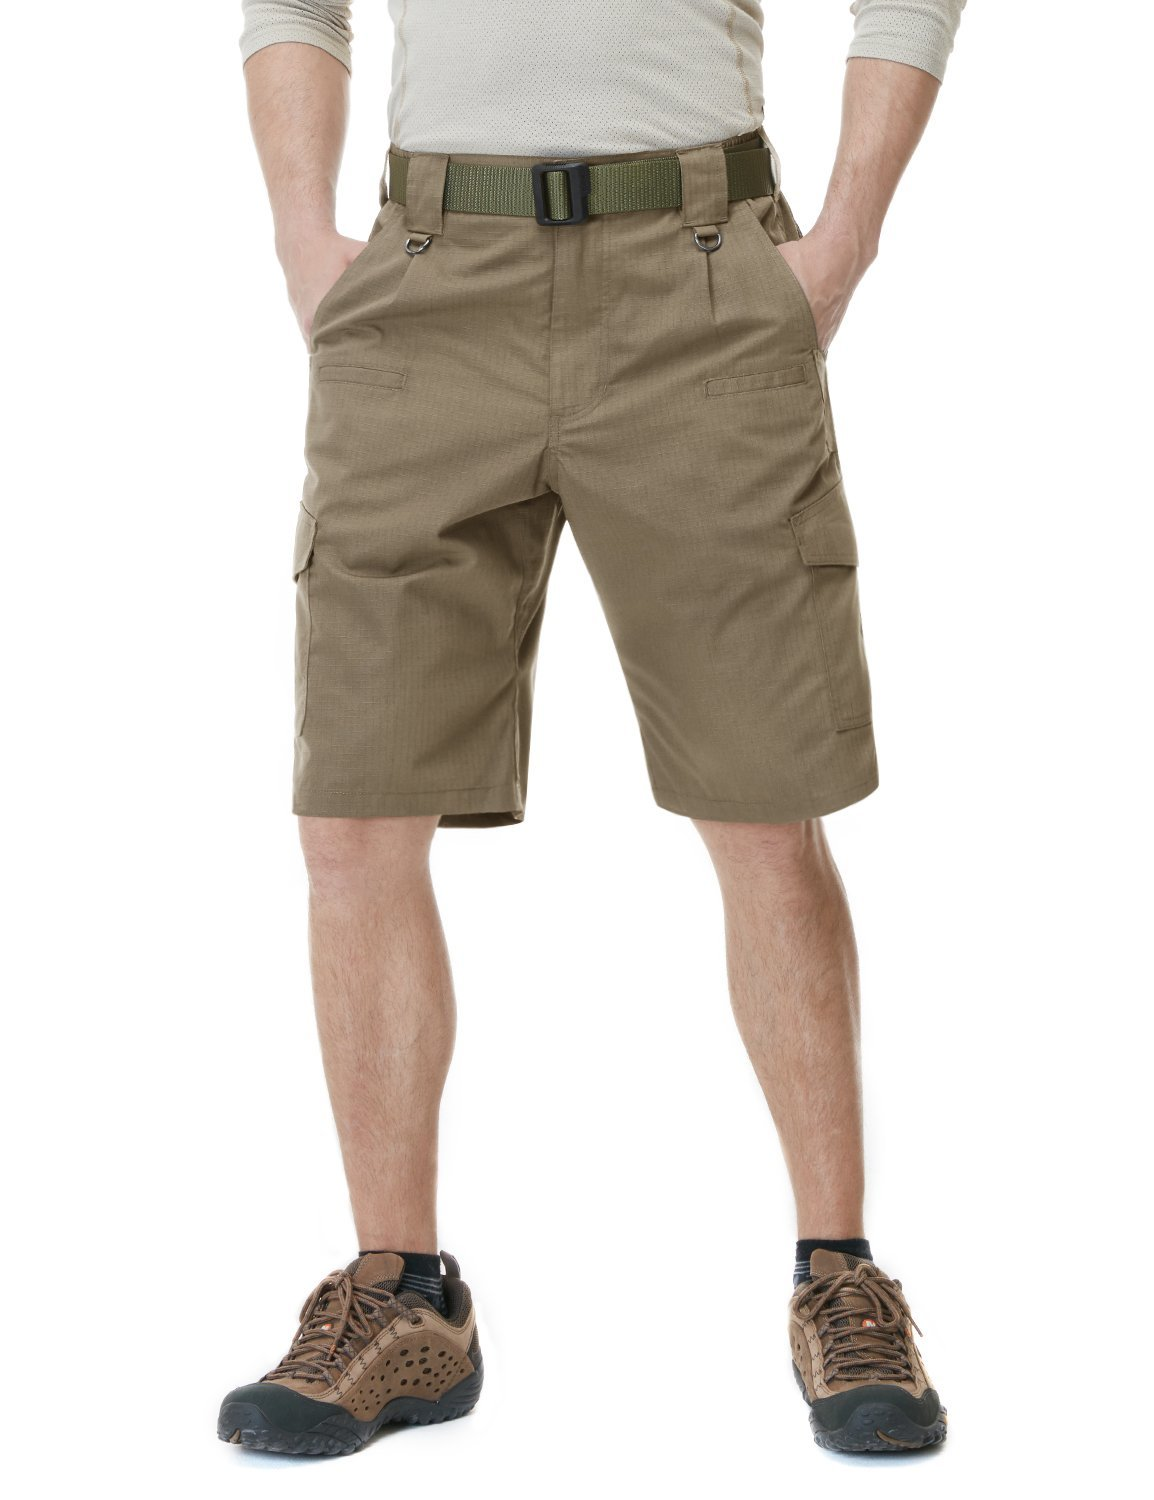 CQR CQ-TSP202-CYT_36 Men's Tactical Lightweight Utiliy EDC Cargo Work Uniform Shorts TSP202